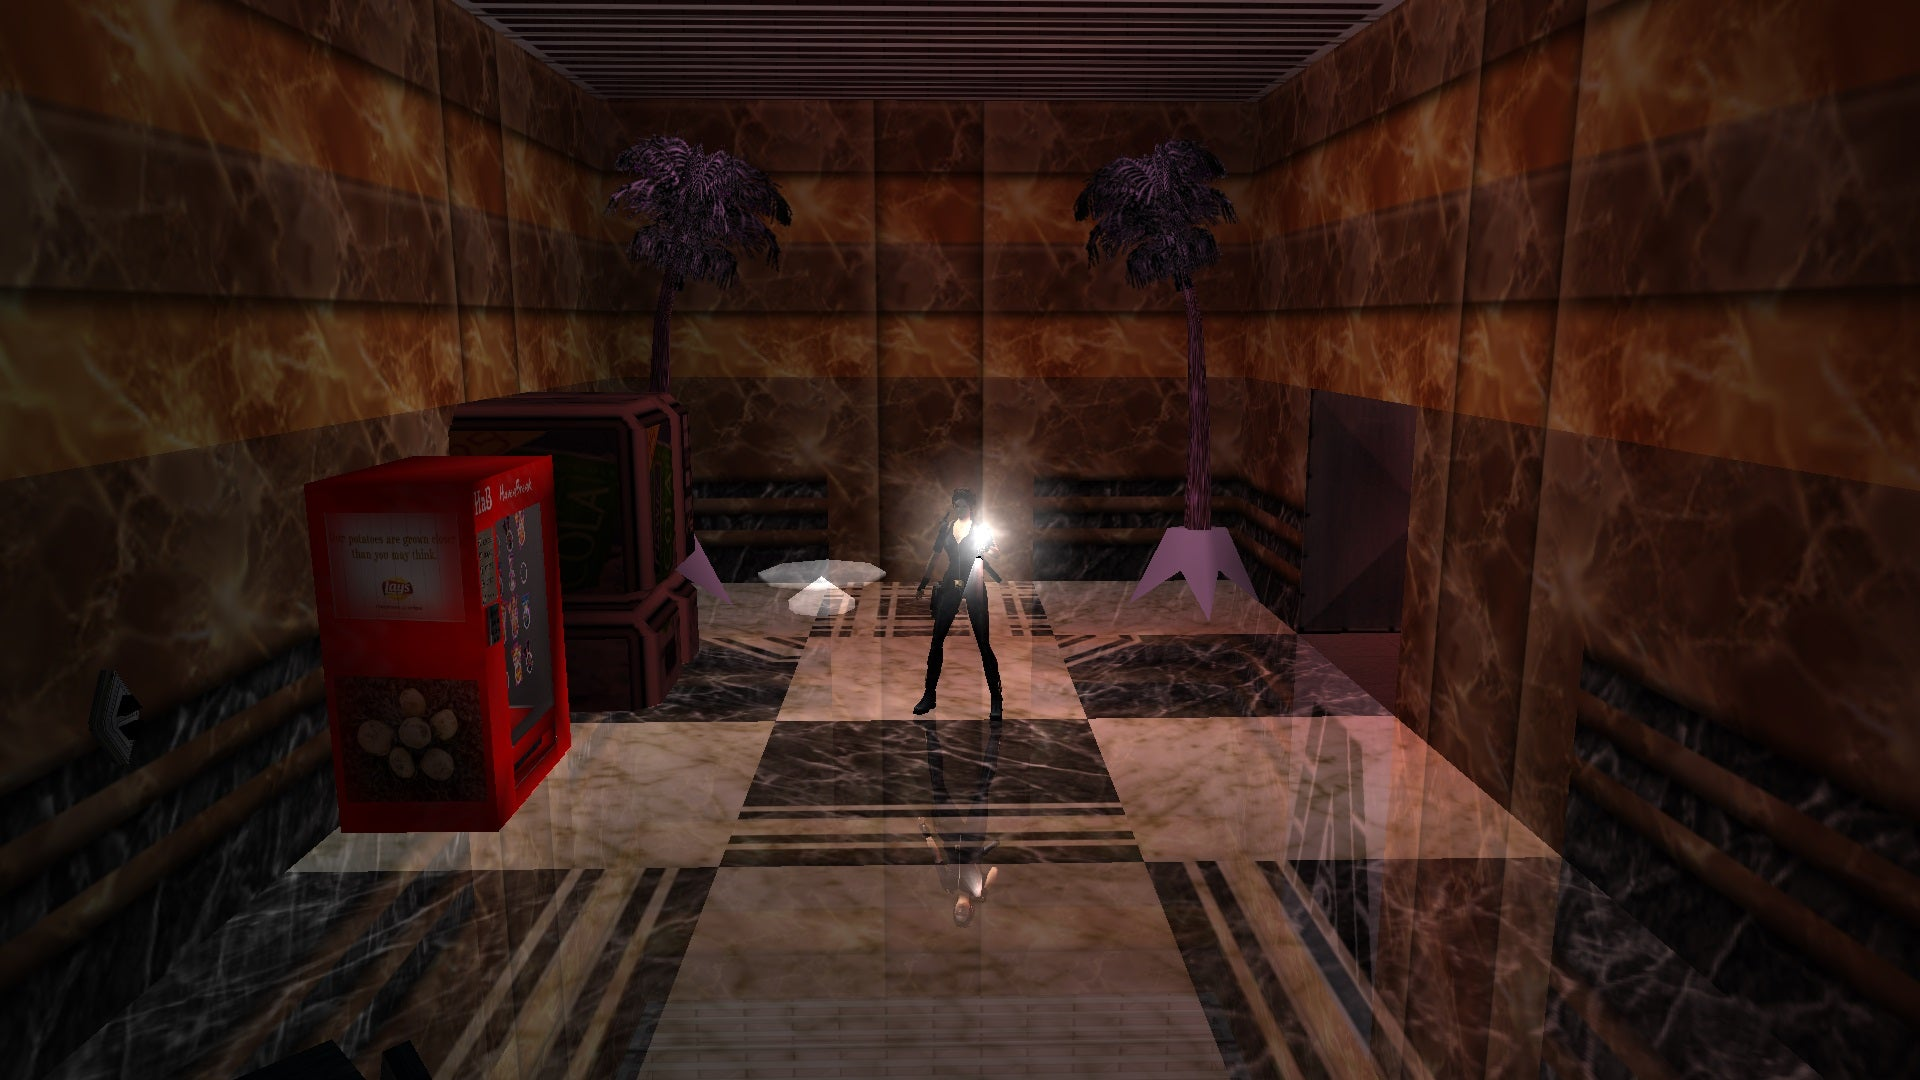 A screenshot from the Tomb Raider custom level called The 13th Floor